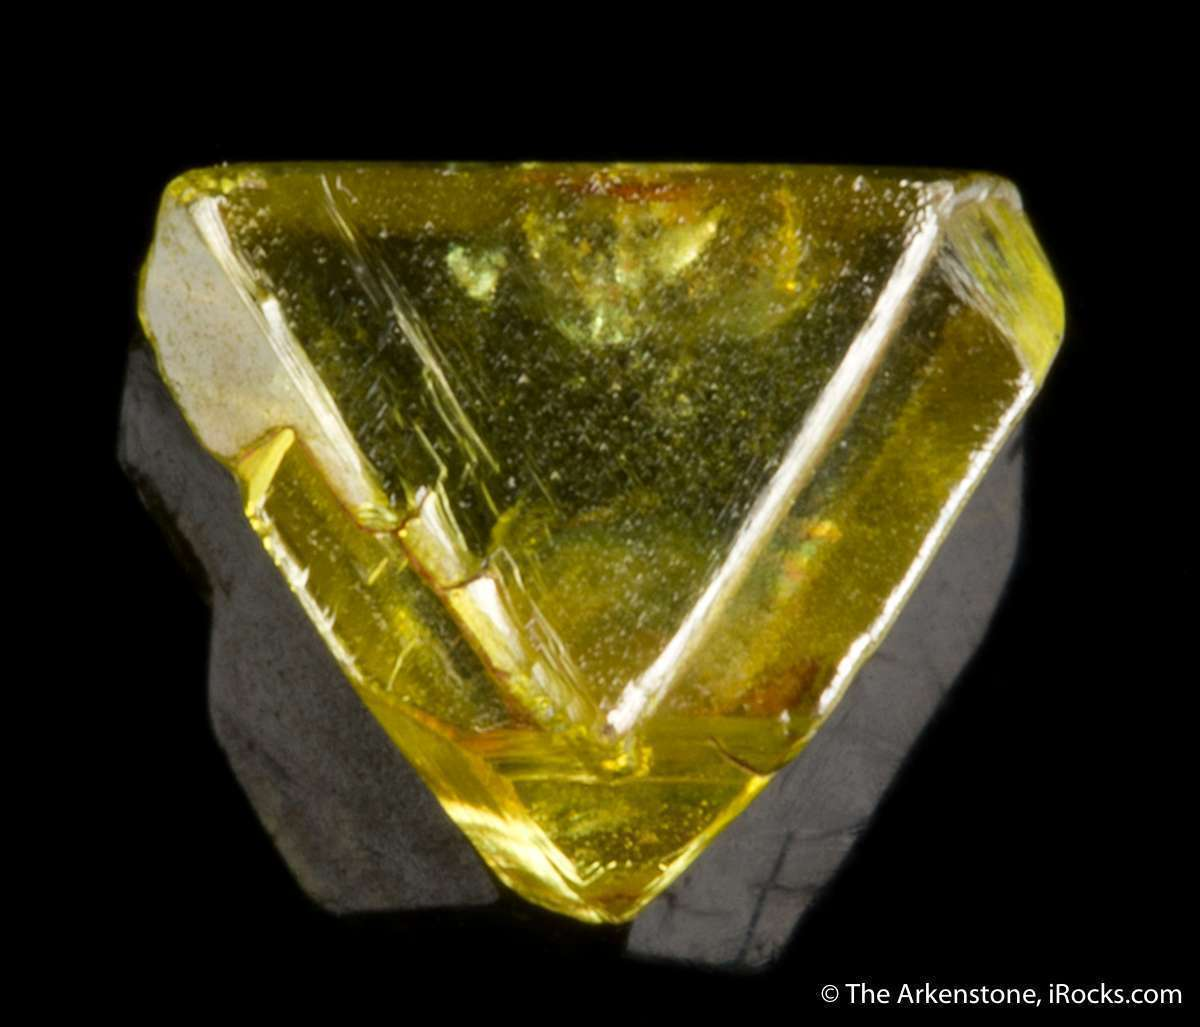 This intense fancy yellow diamond crystal natural shape formed